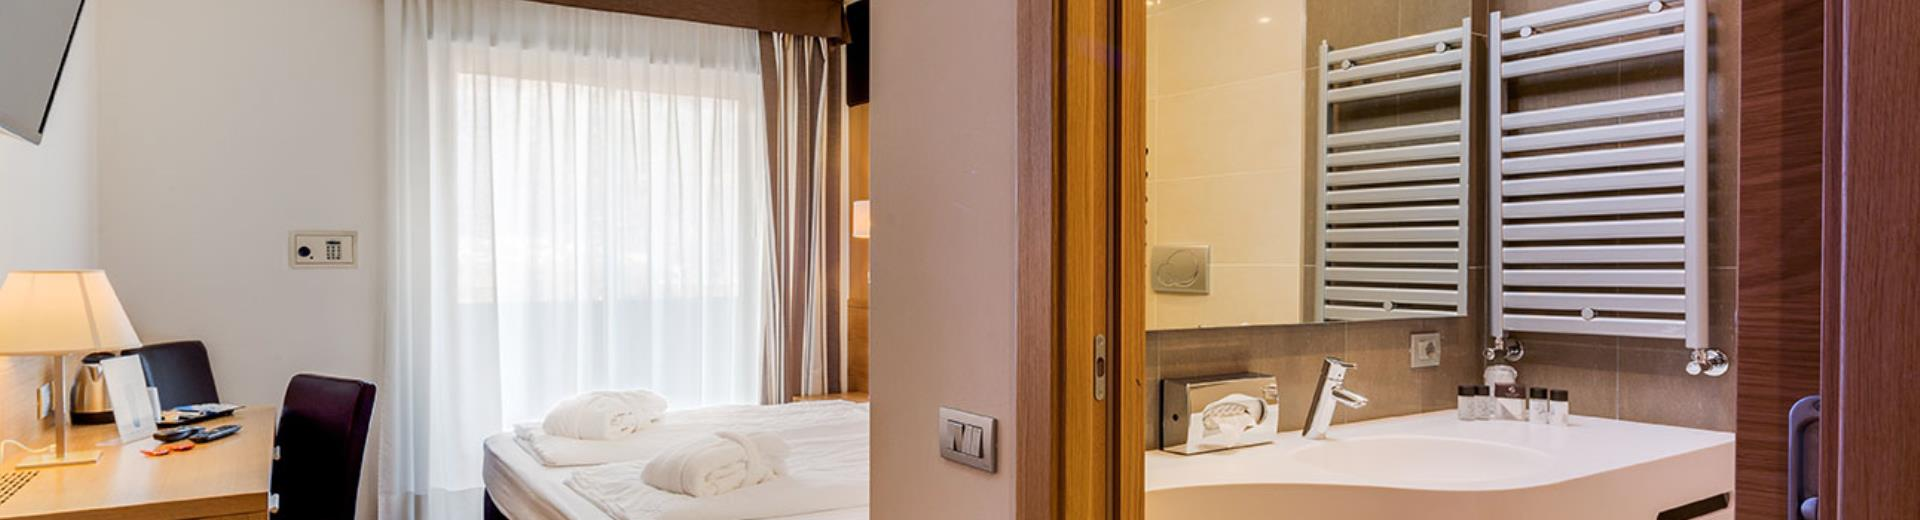 Check out the Executive Plus rooms of the Best Western Hotel Adige, 4 star hotel near Trento!